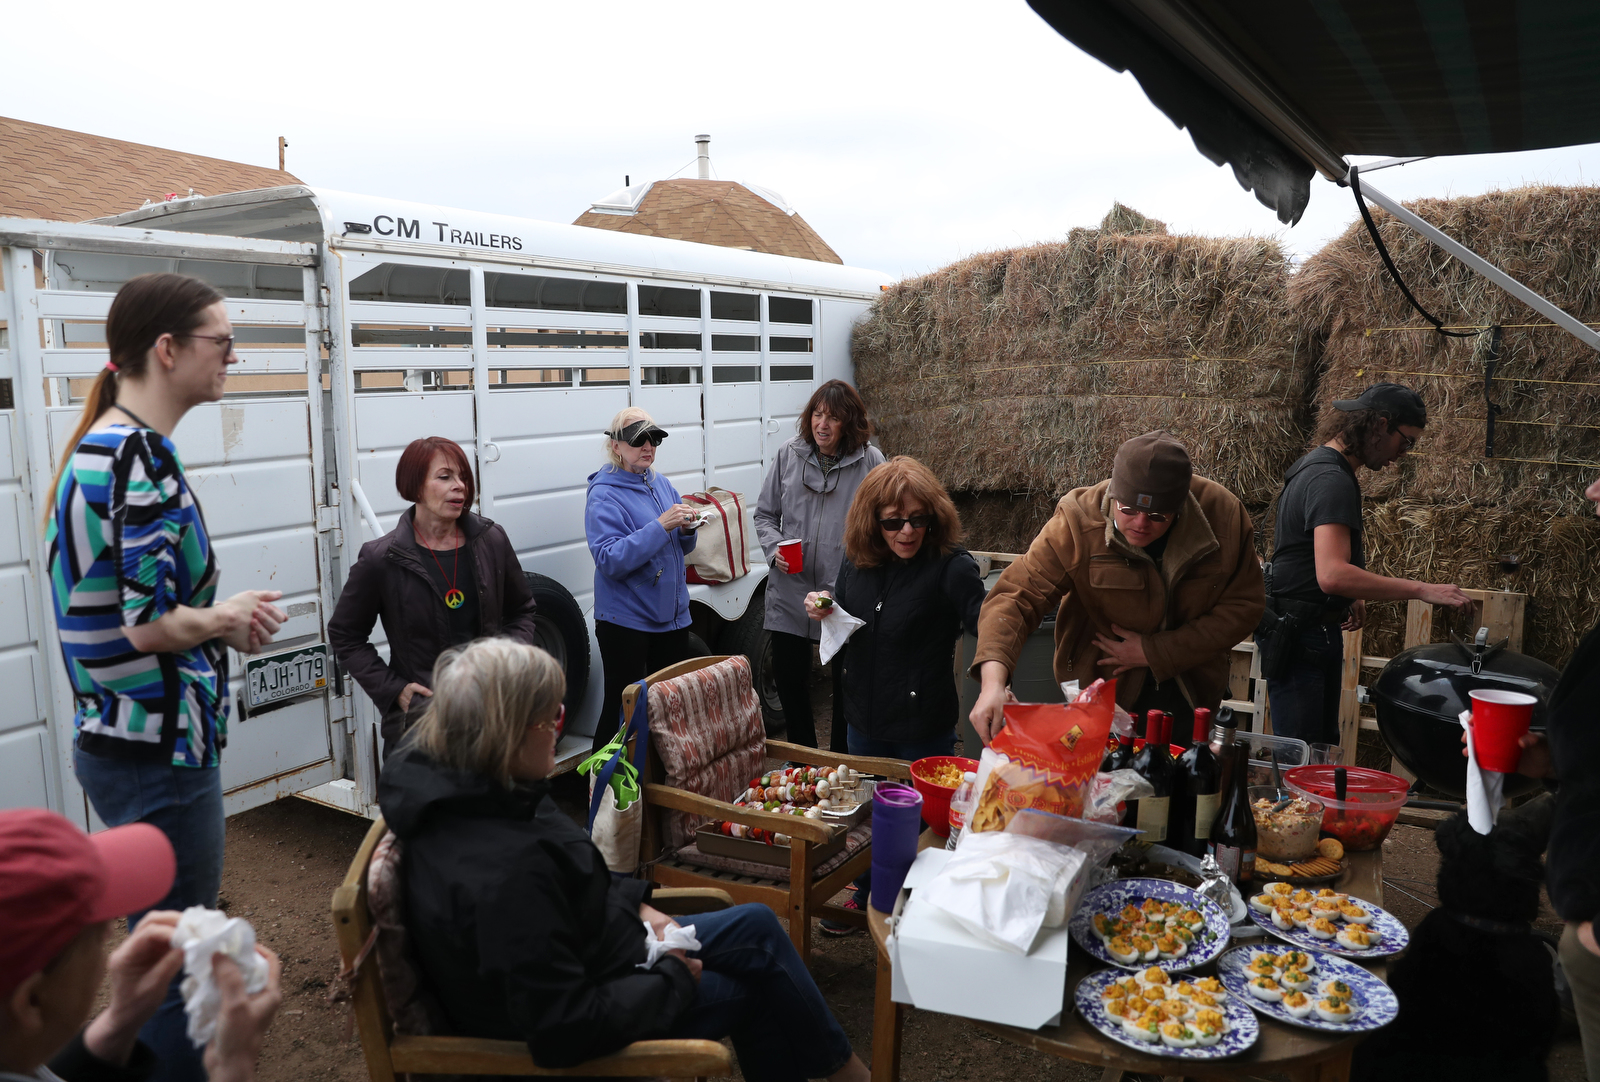 Rancher Jennifer Radford, upper left, mingles with community members and friends, (from left), Cassie Schwartz, Jackie Jones, Ellen Glover, Melissa Salierno along with fellow ranchers Sky Nelson and J Stanley during during a BBQ at the Tenacious Unicorn Ranch.